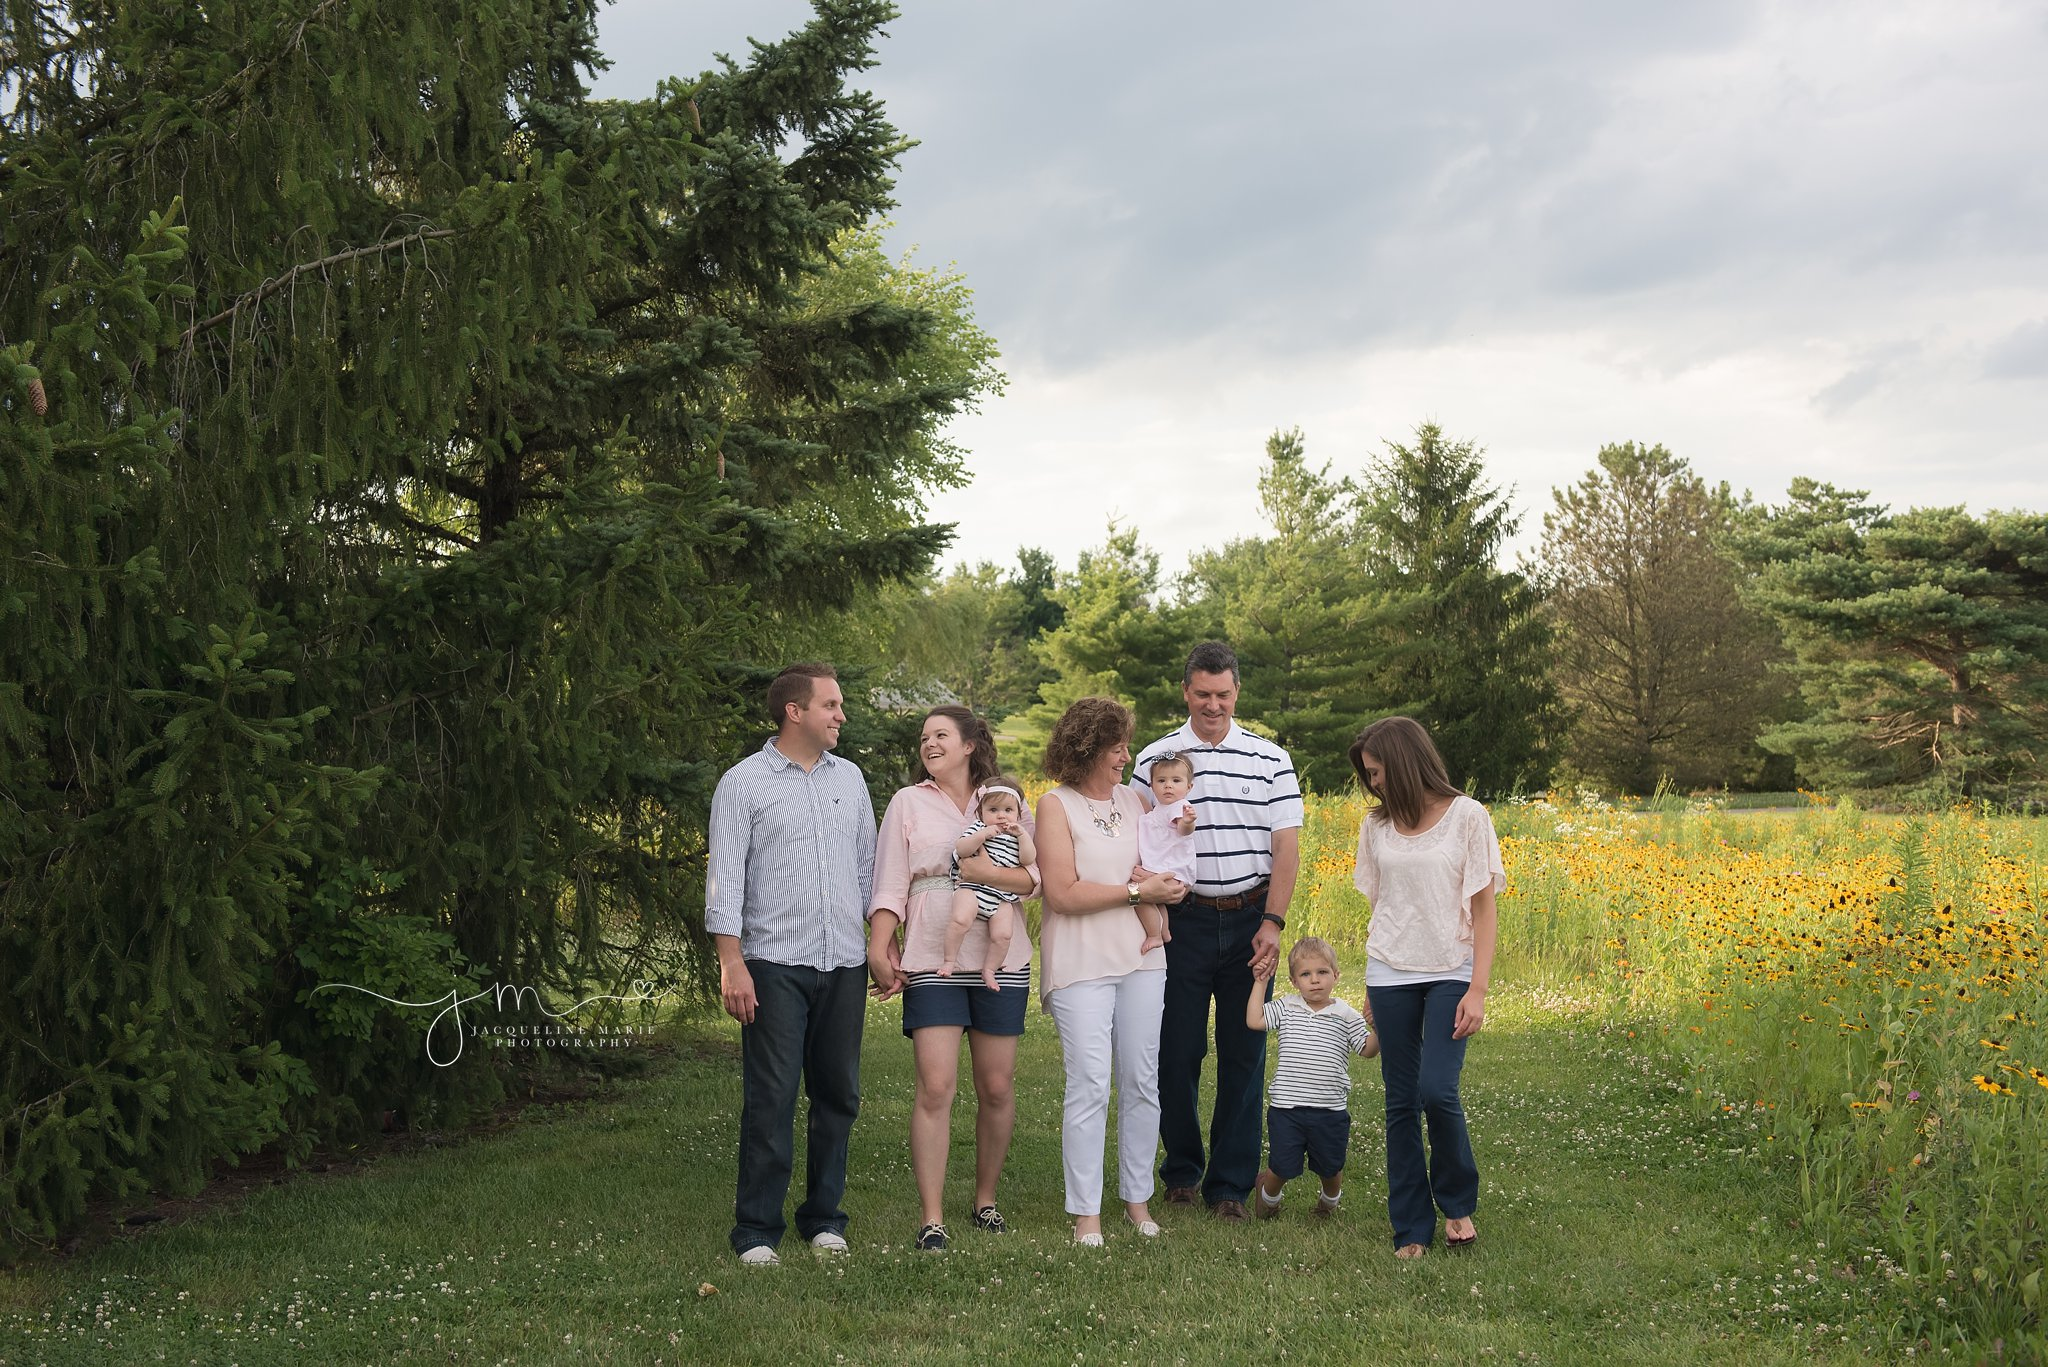 columbus ohio family photographer features family walking and holding hands while smiling in a field of flowers